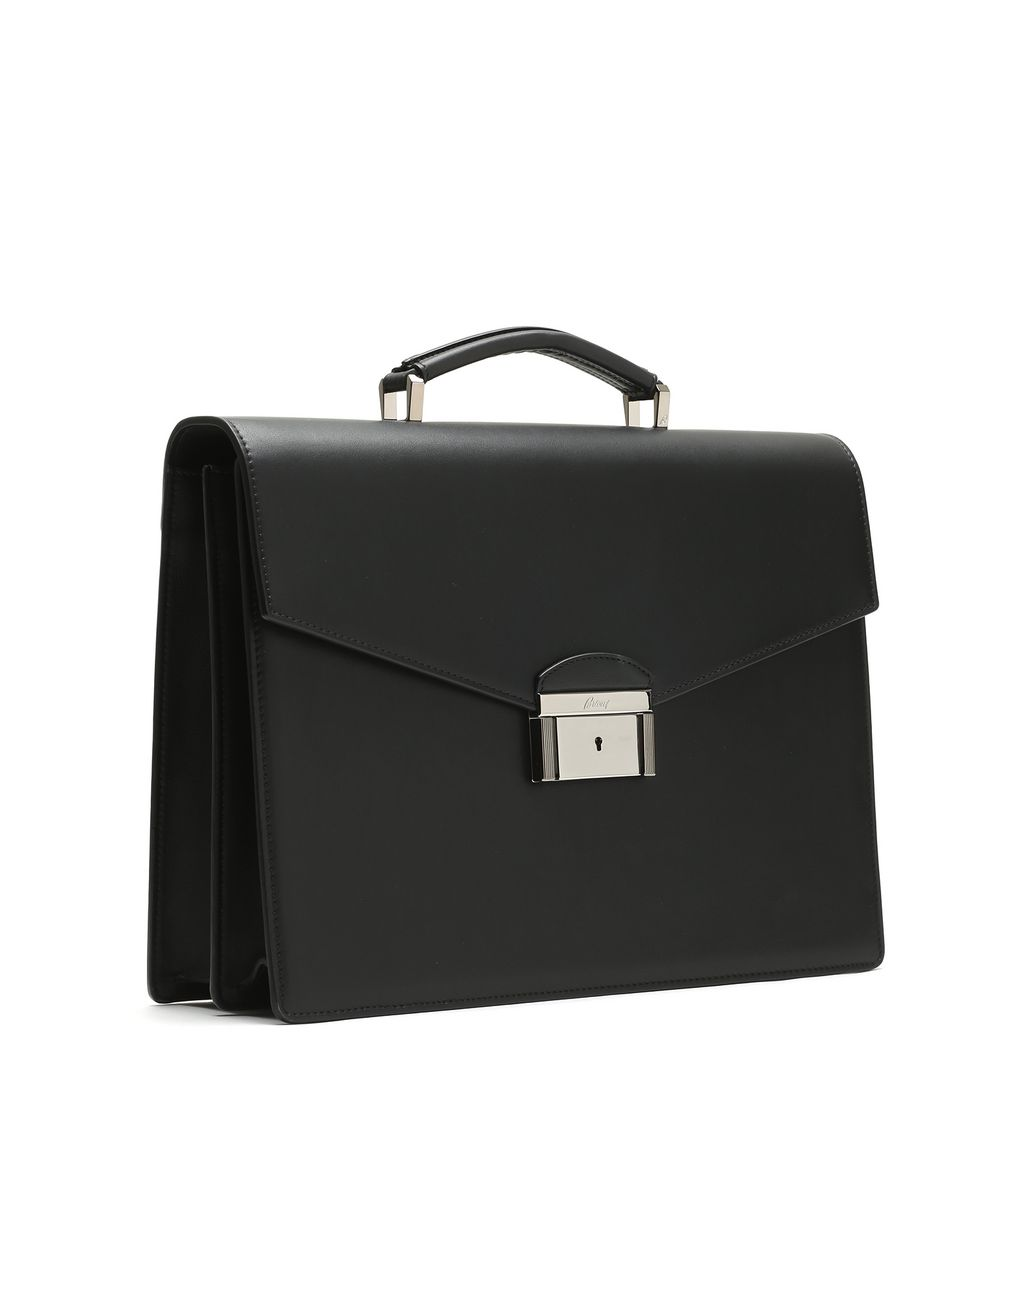 BRIONI Briefcase Nera in Pelle di Vitello Business Uomo r